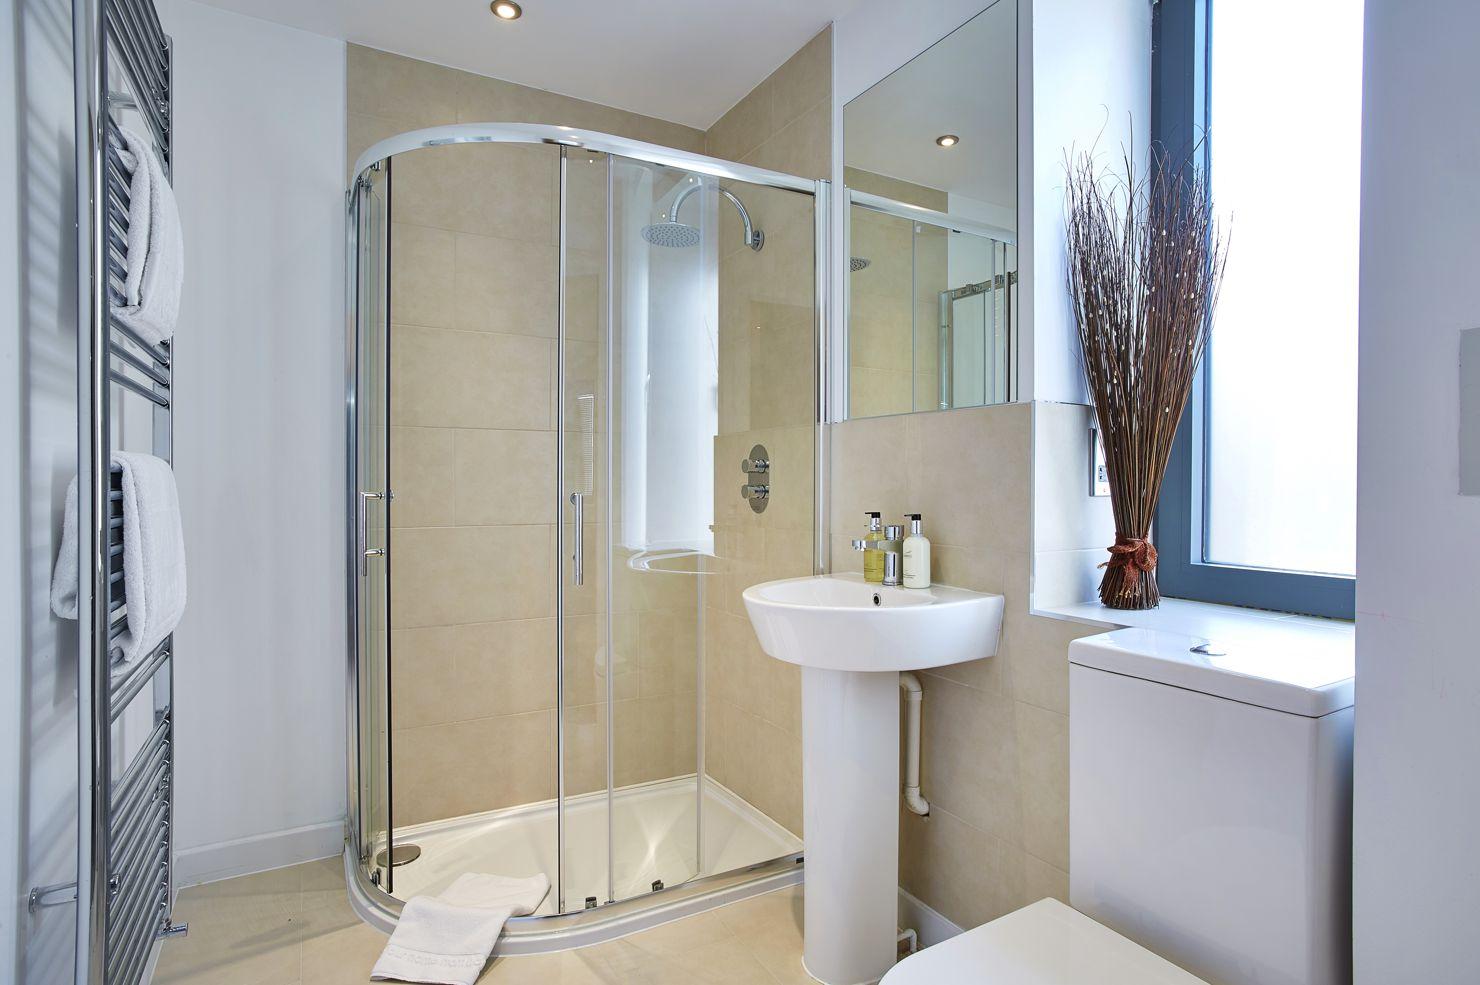 Colne-Lodge-Self-Catering-Accommodation-Staines---Serviced-Apartments-Staines-Upon-Thames-UK-|-Urban-Stay